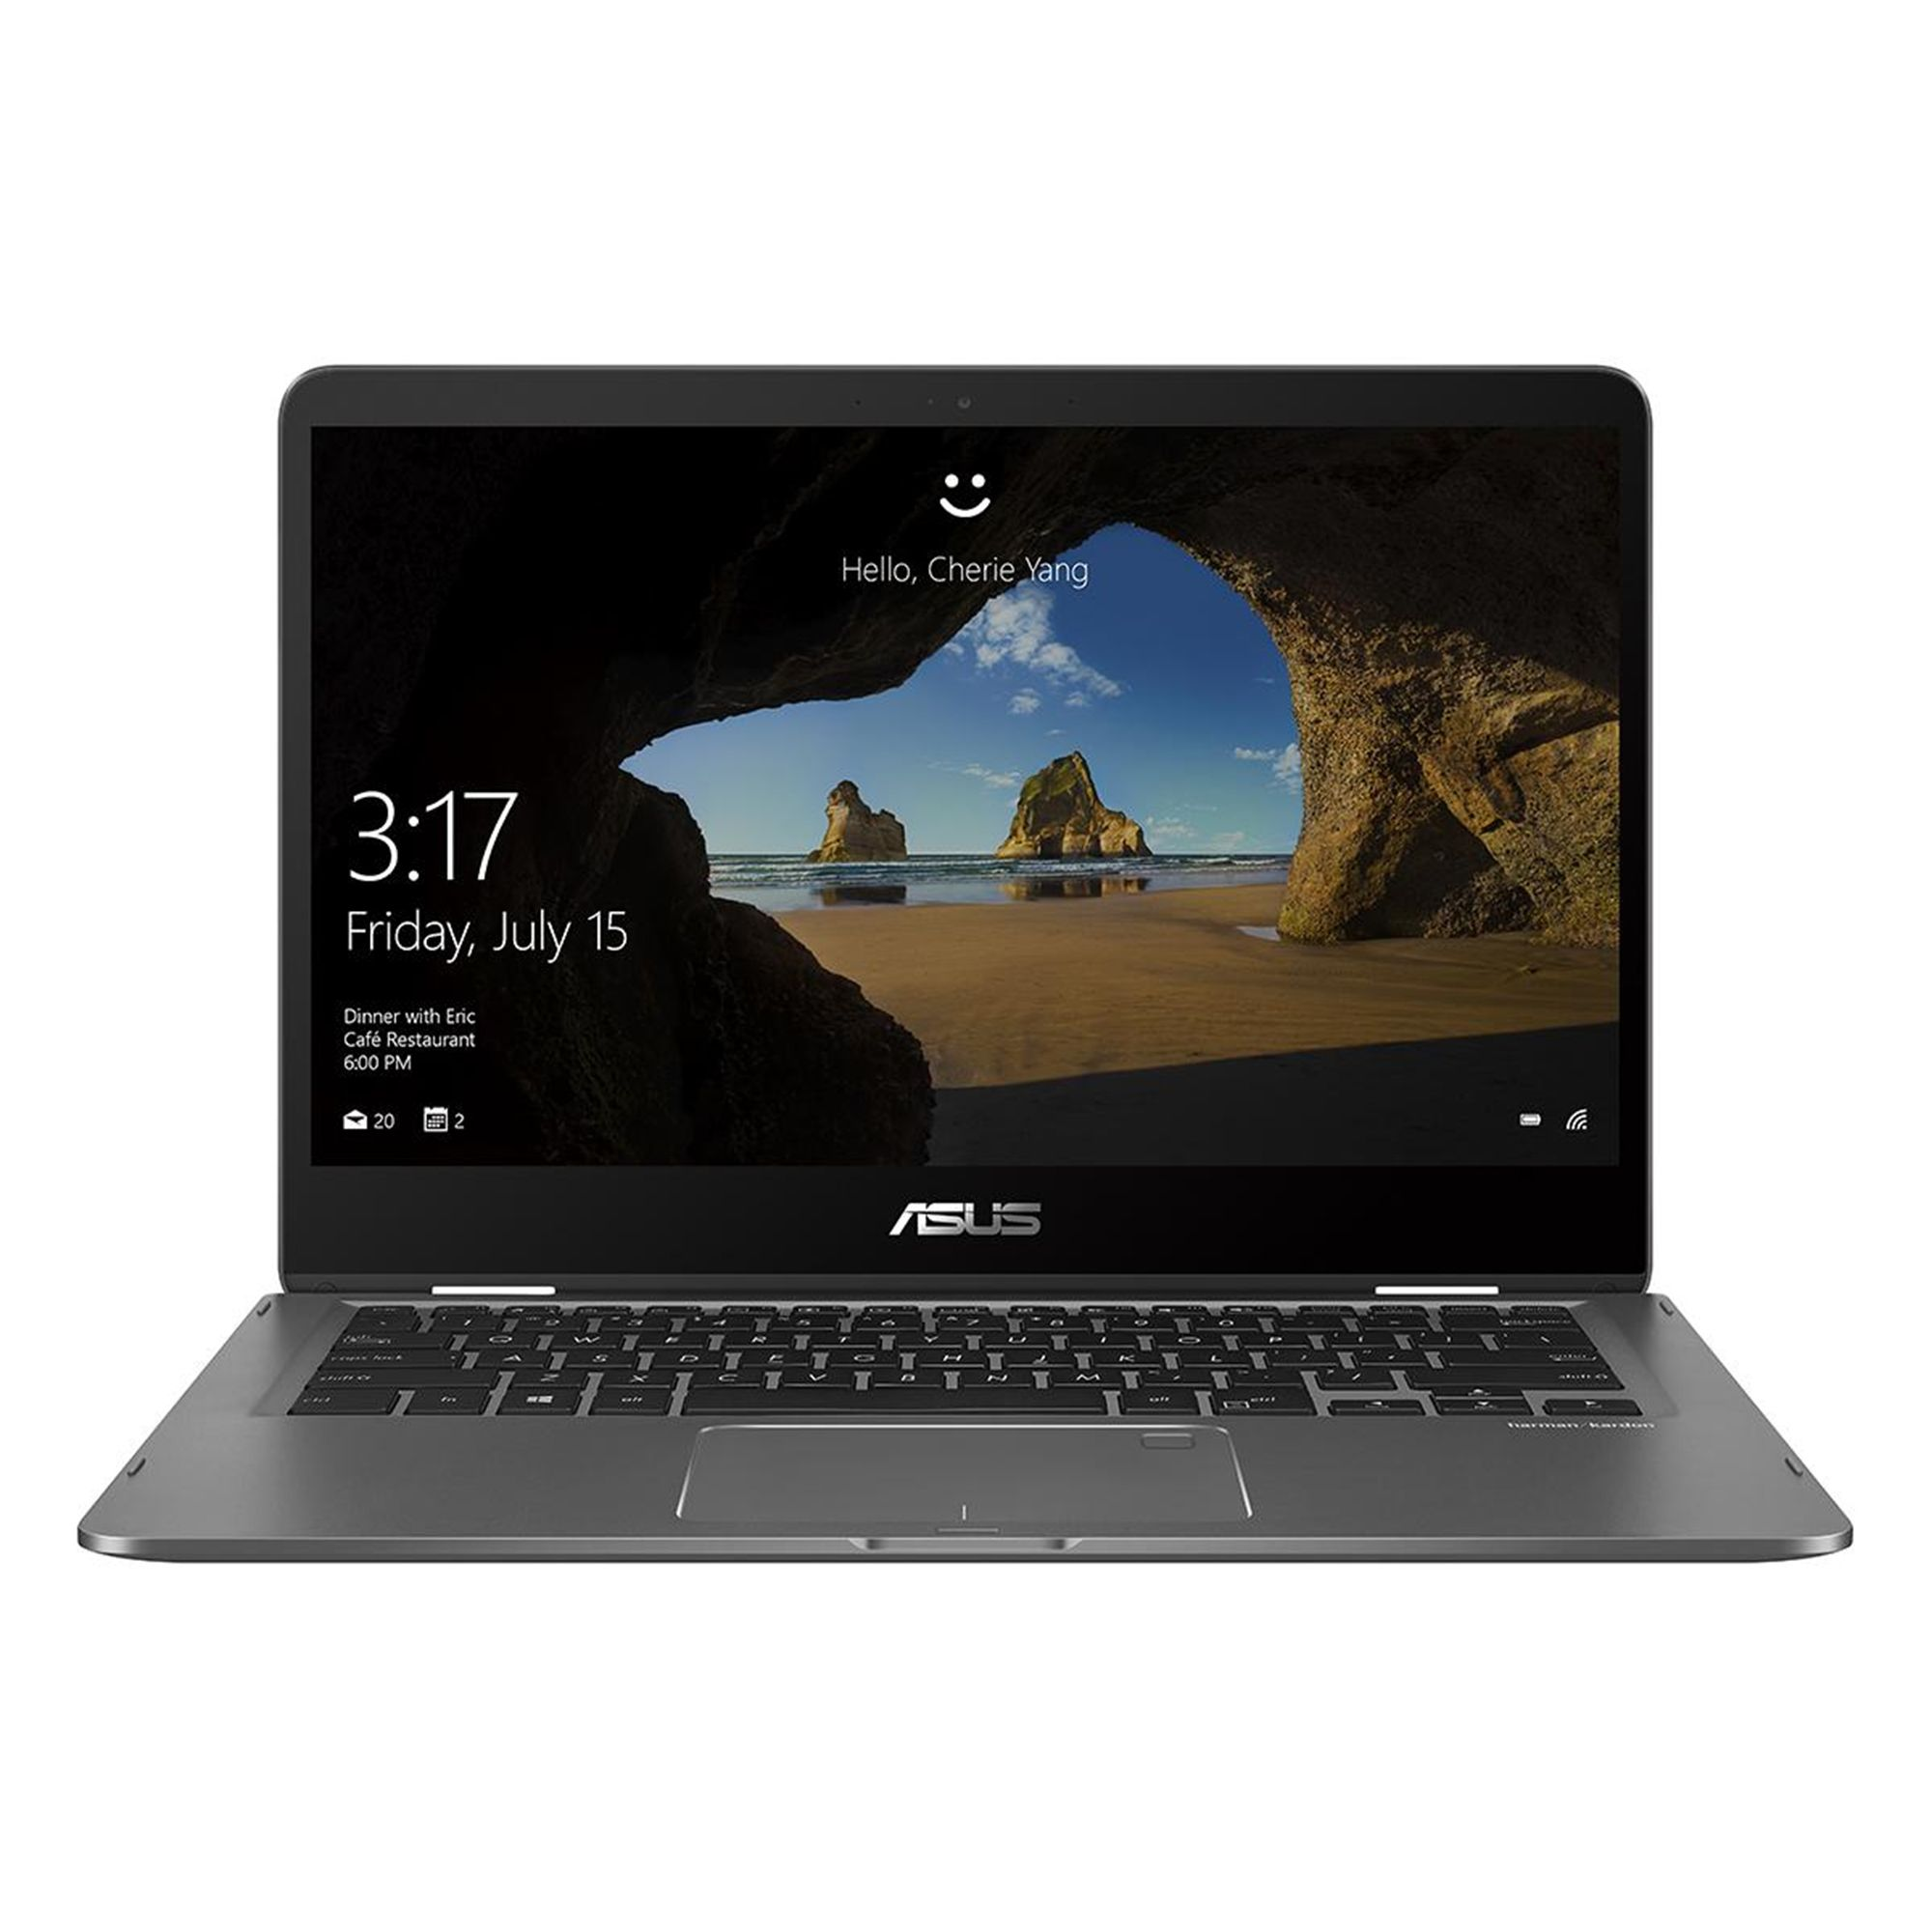 Ultrabook Asus ZenBook UX461UA 14 Full HD Touch Intel Core i5-8250U RAM 8GB SSD 256GB Windows 10 Home Gri